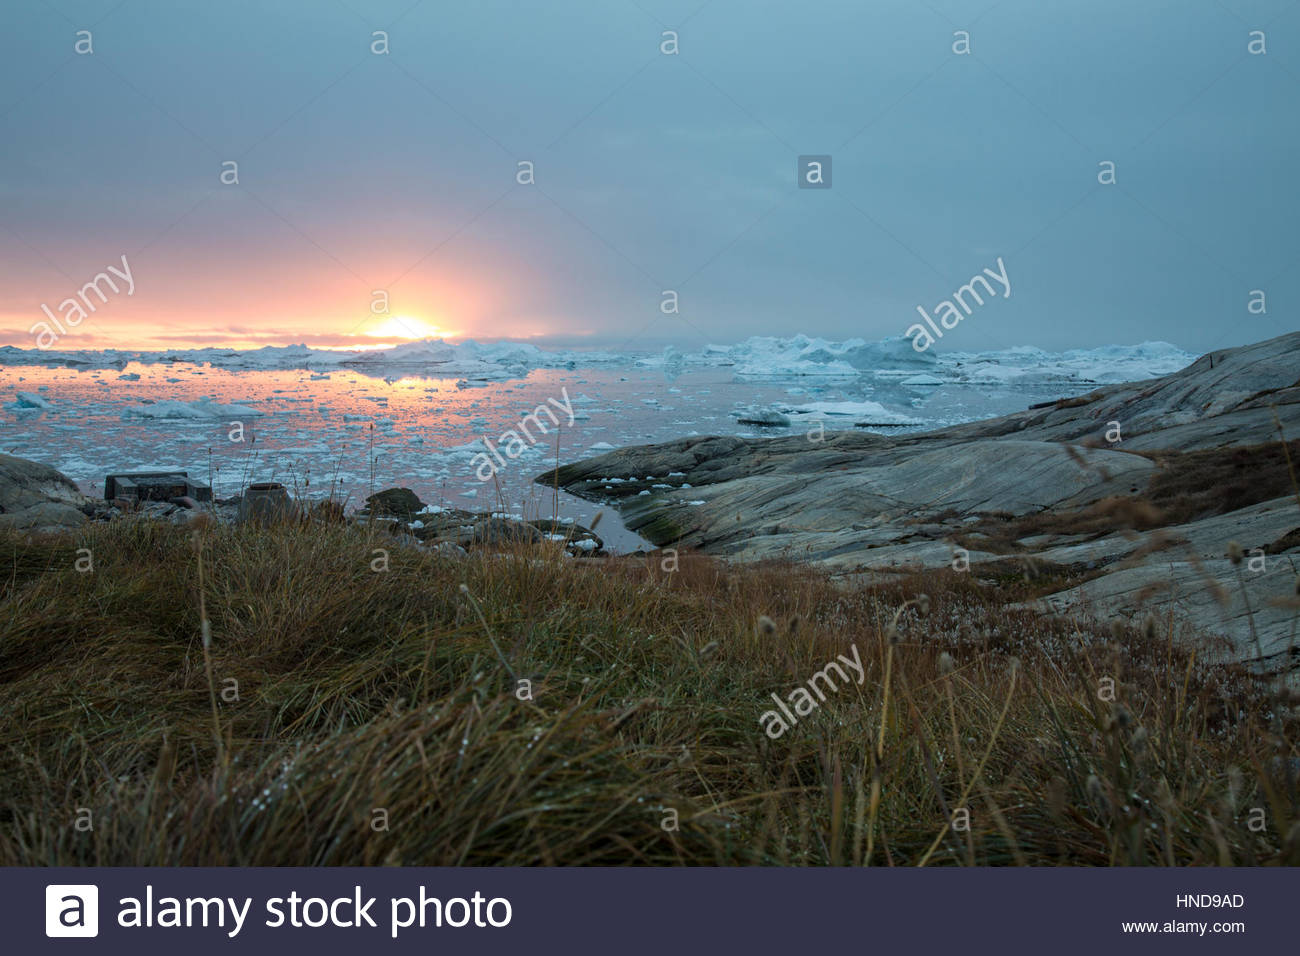 Greenland Sunset from the Icefjord Stock Photo